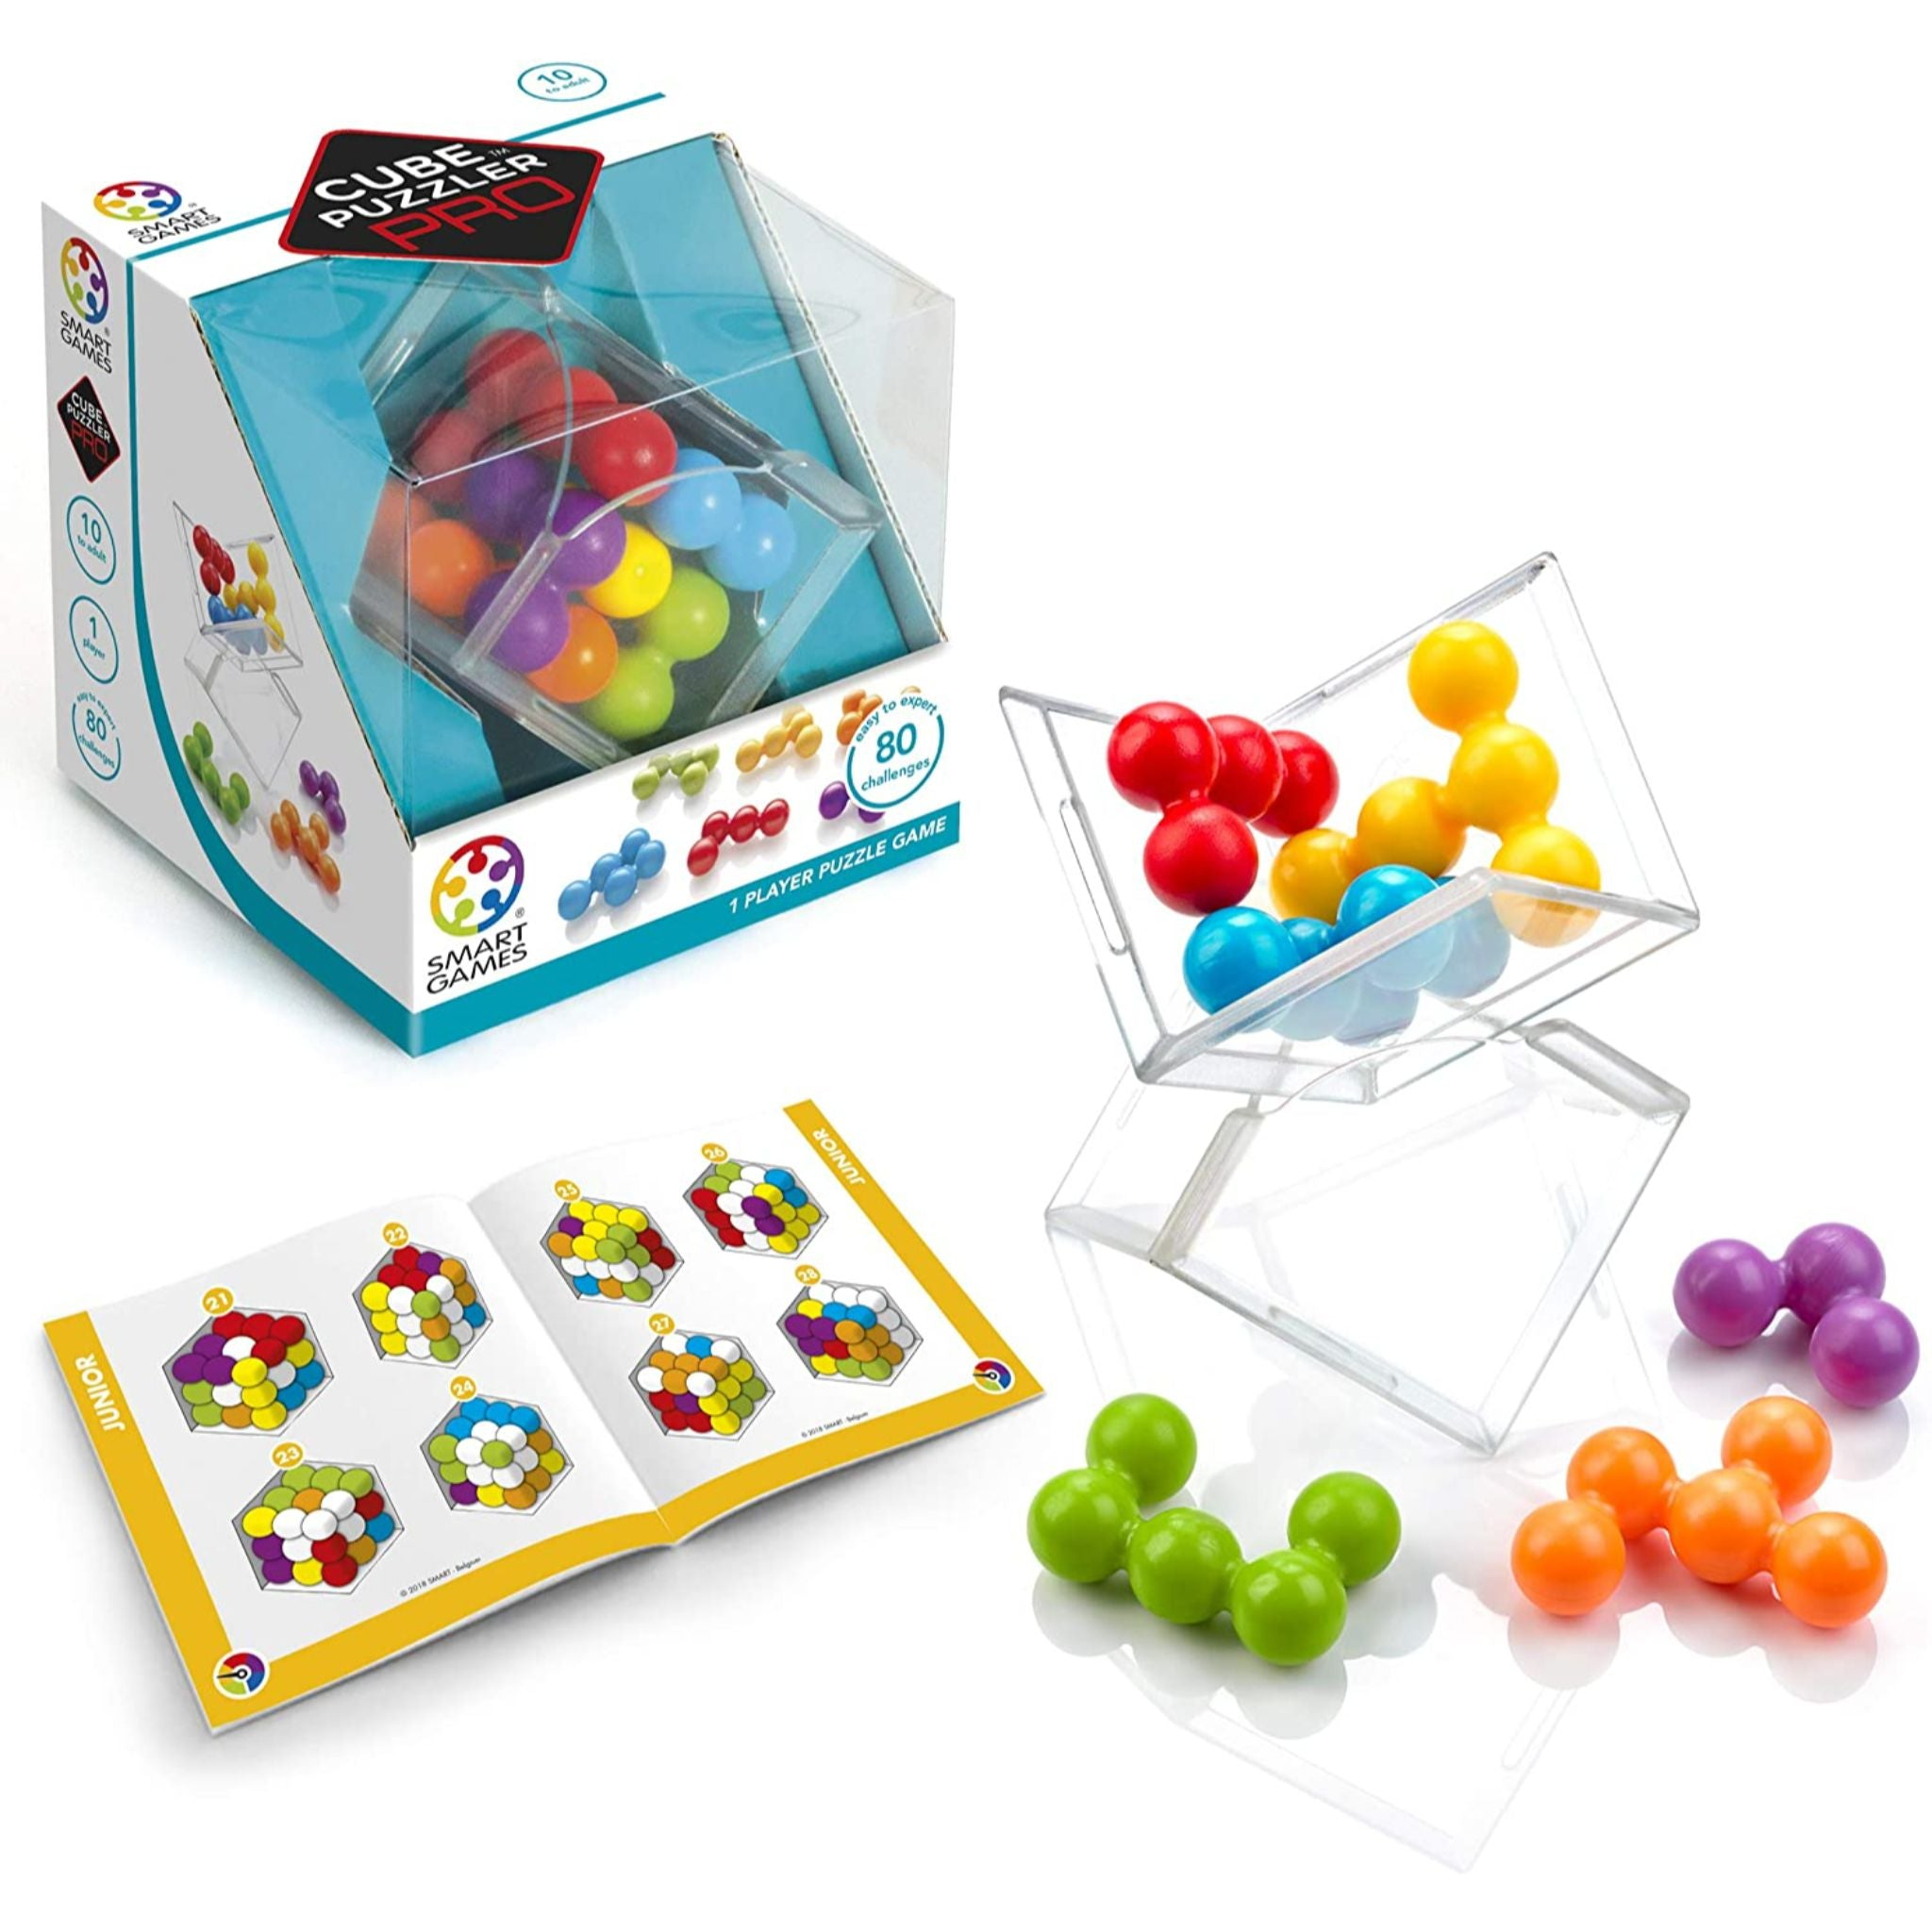 Smart Games Cube Puzzler - Pro